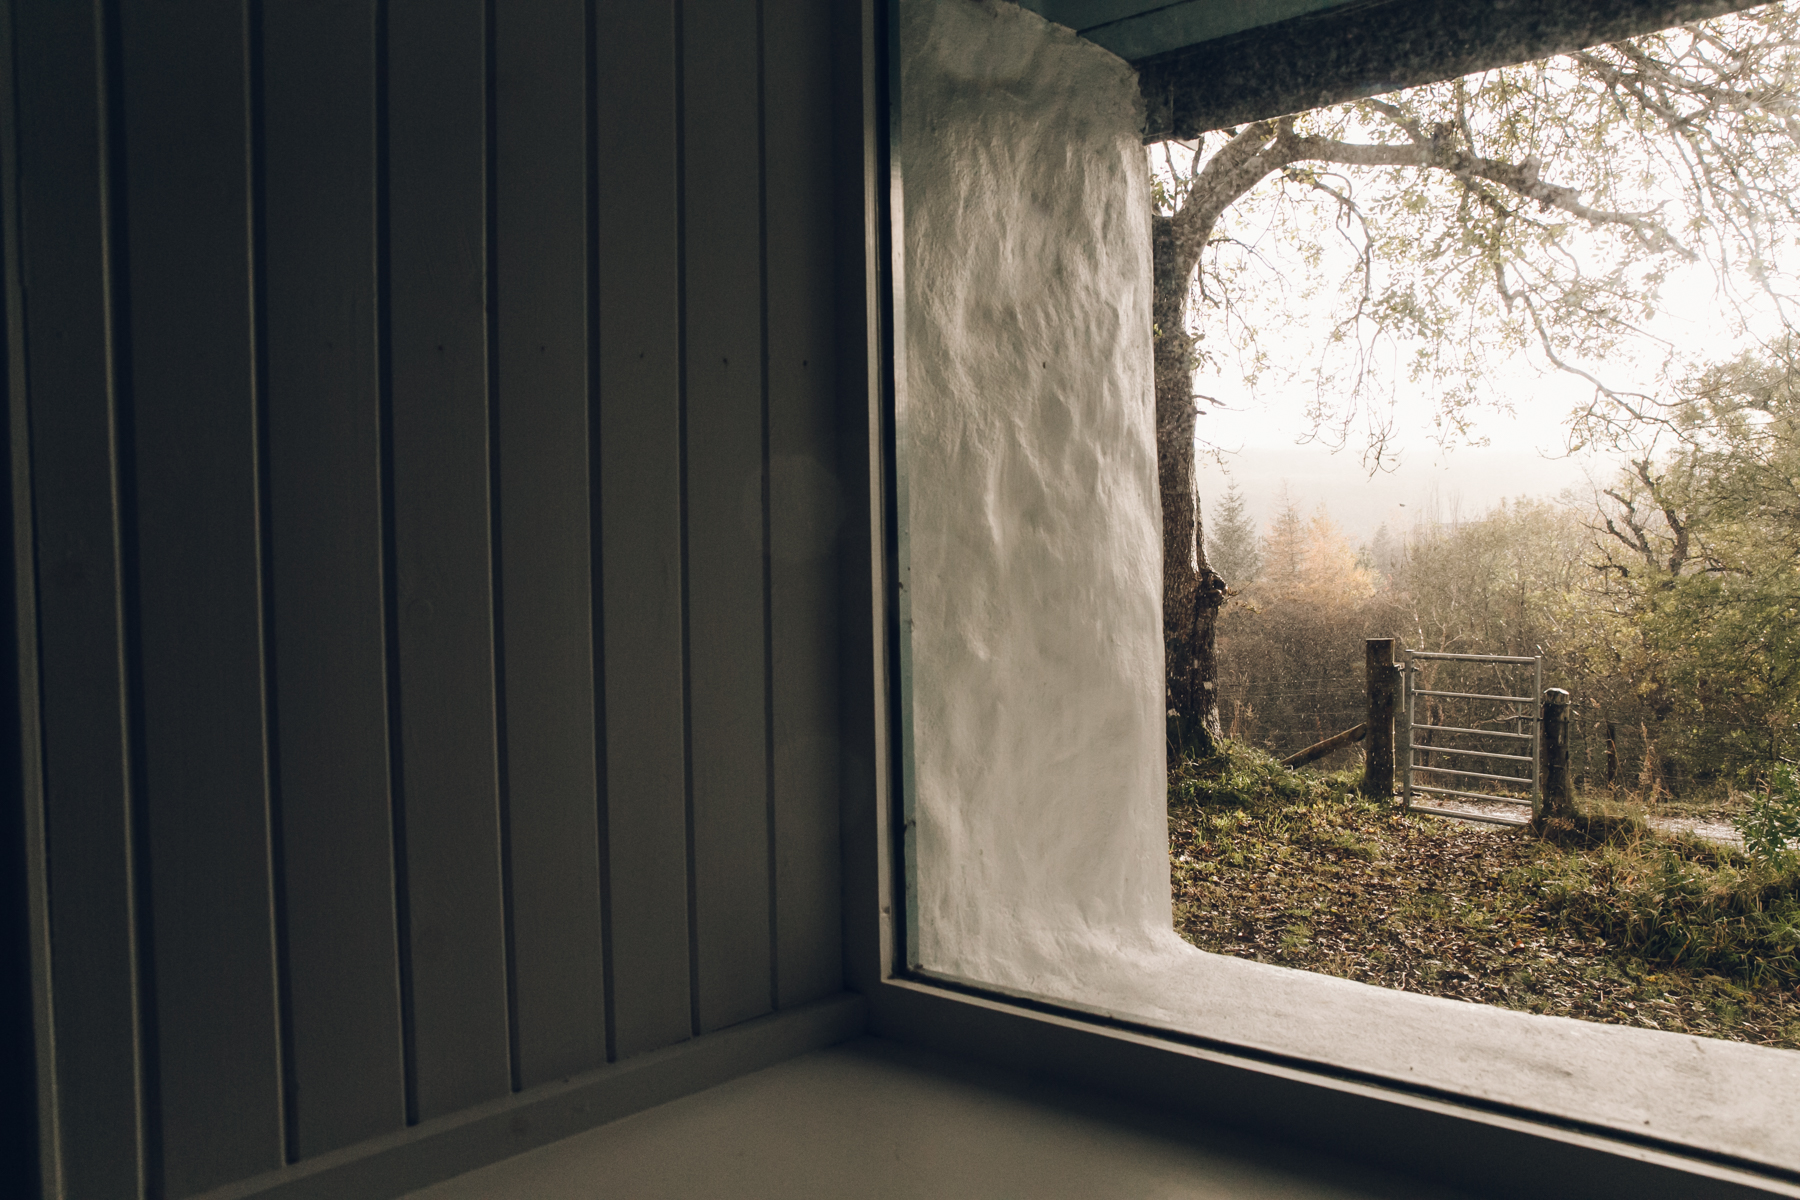 View from inside The Crofter's House on the Isle of Skye.